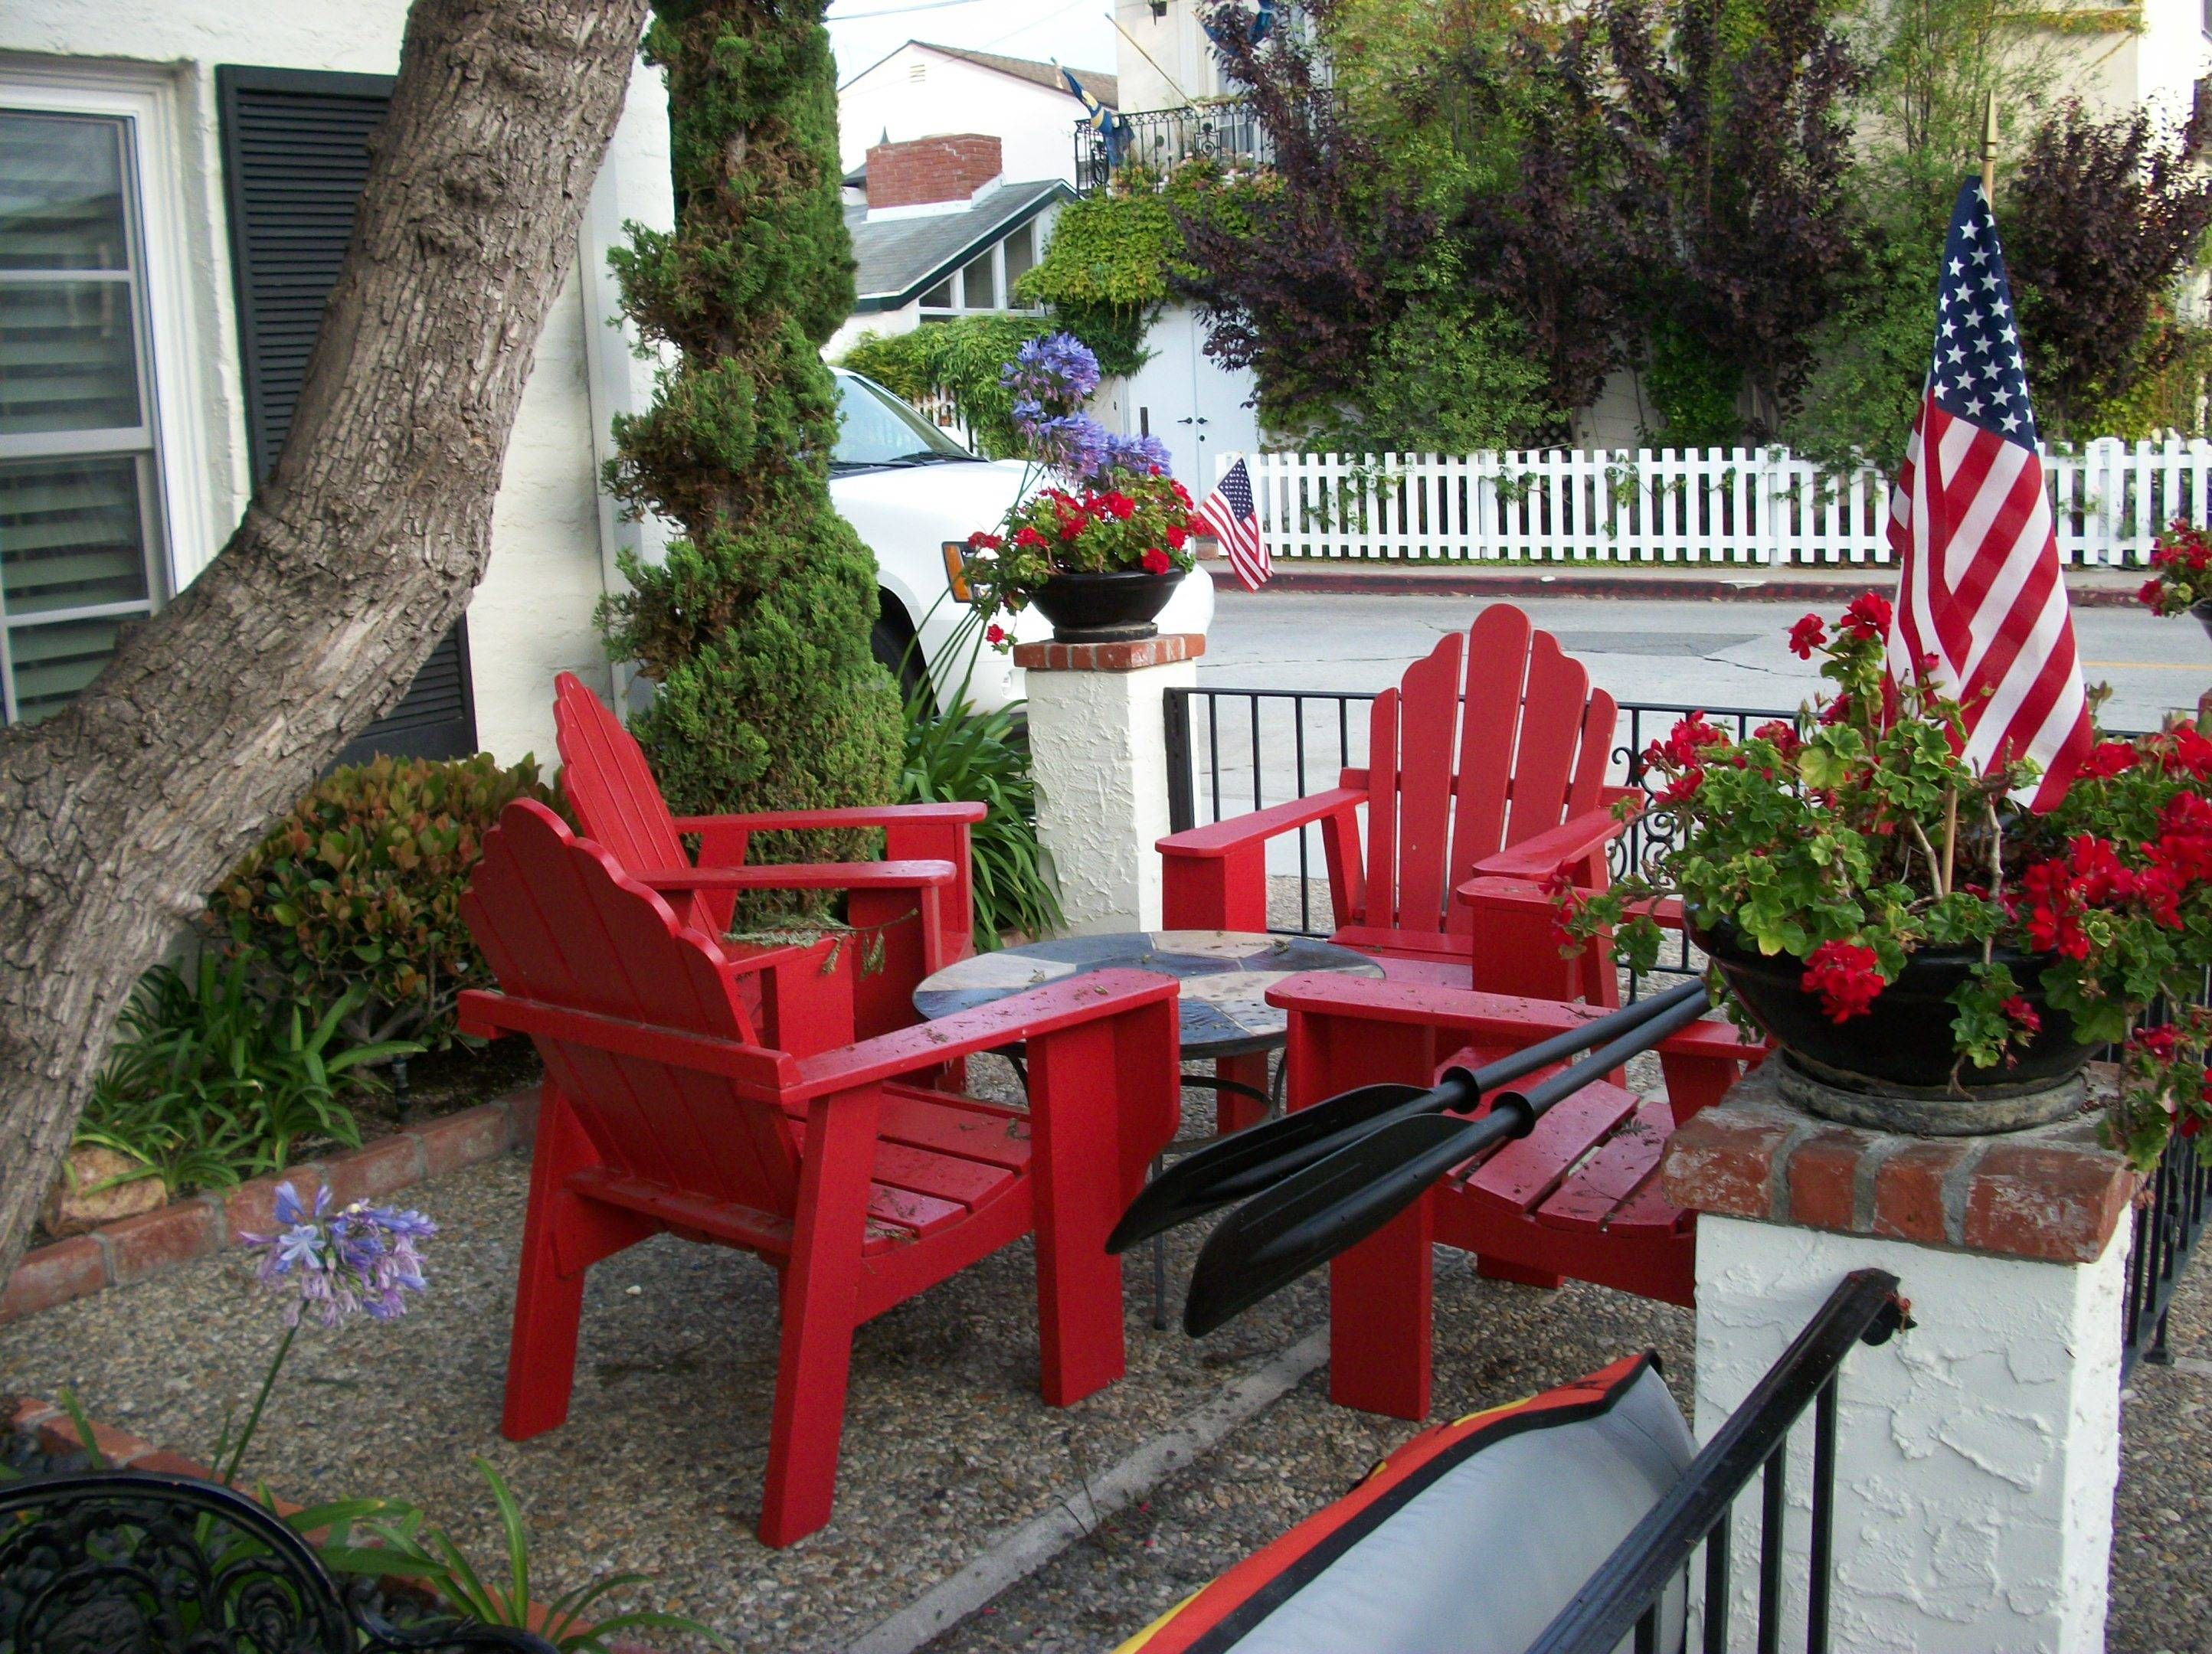 Small outdoor patio decorating ideas - Small Outdoor Patio Decorating Ideas